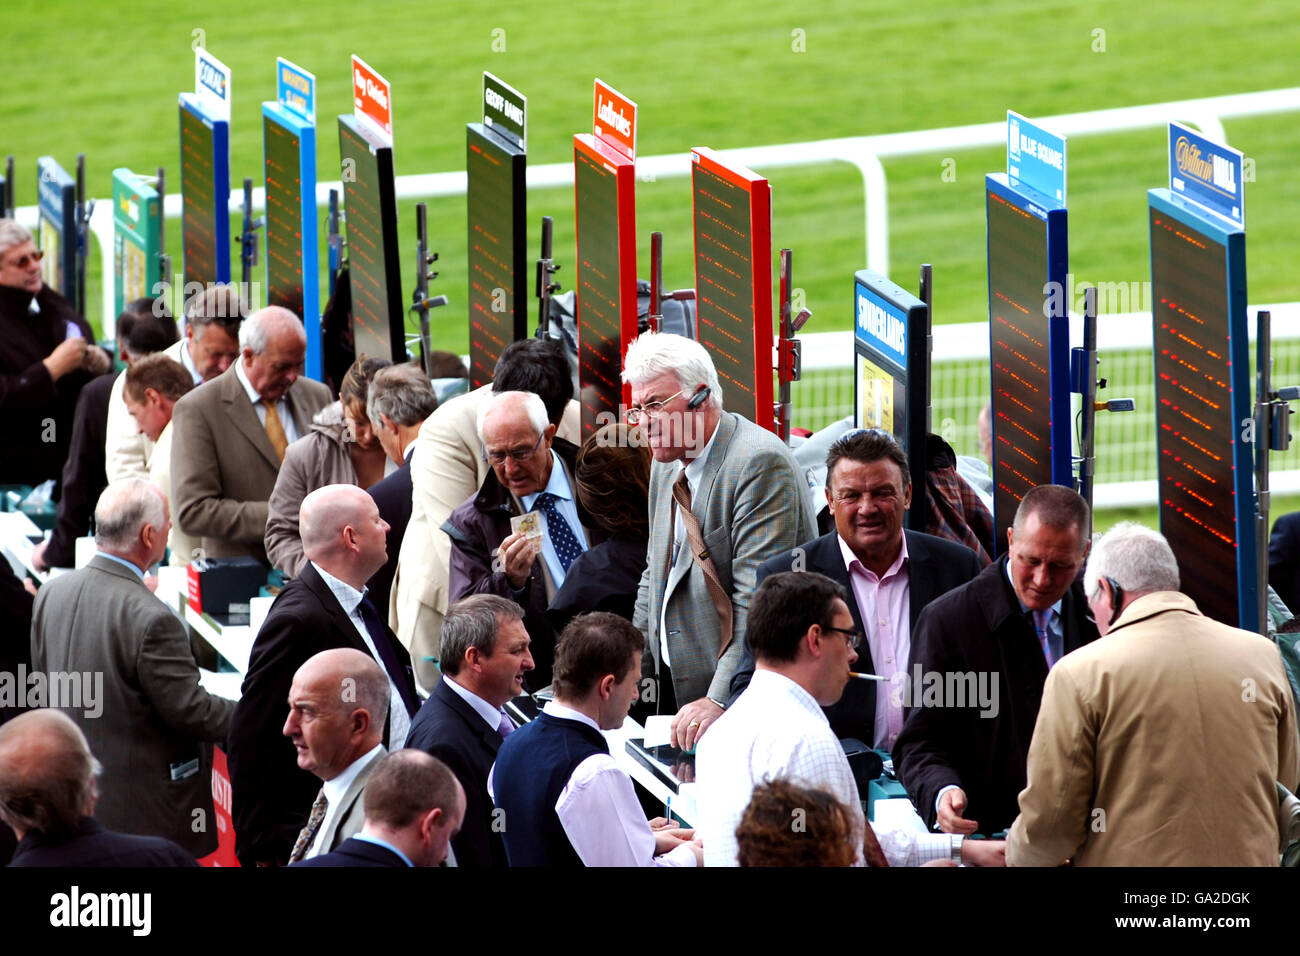 Horse Racing - Property Ladies Day - Sandown Park Racecourse Stock Photo